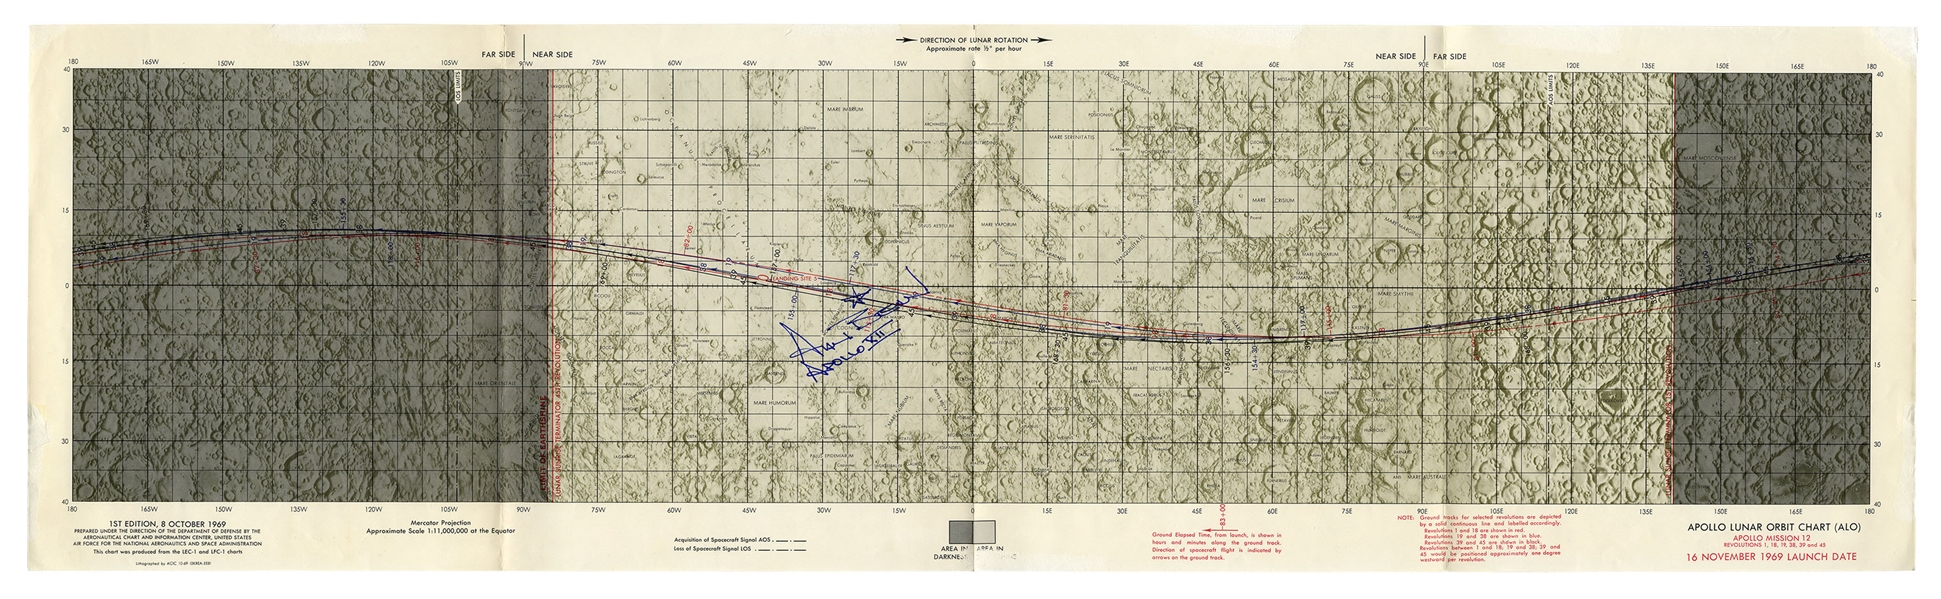 Alan Bean Signed Apollo Lunar Orbit Chart for the Apollo 12 Mission